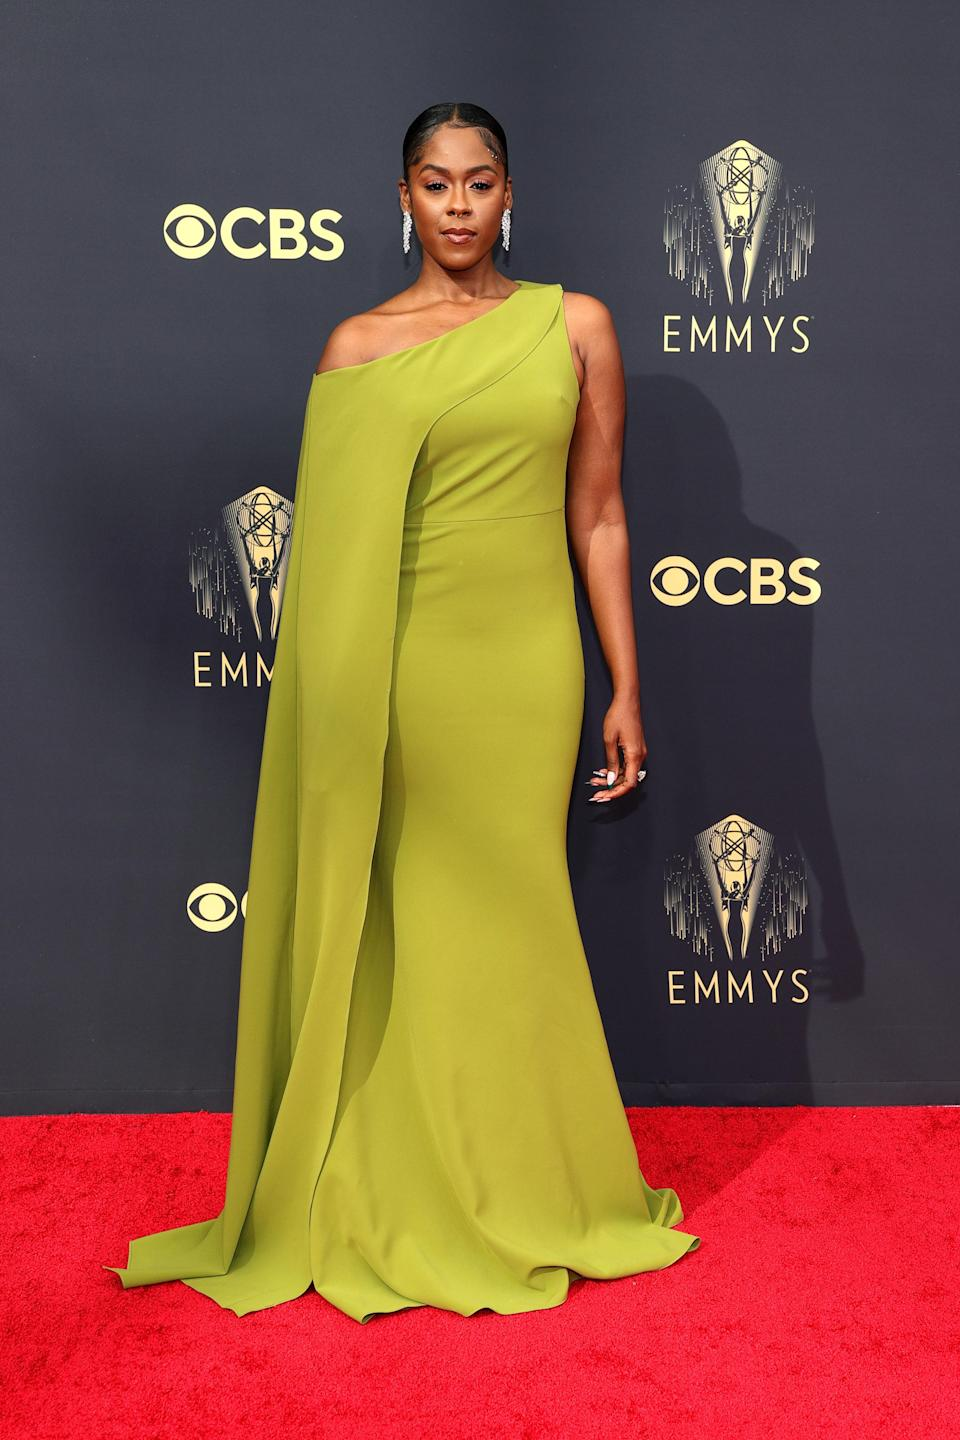 Moses Ingram's avocado-hued off-the-shoulder gown is gorgeous, as are the statement earrings she paired it with. We also loved the chain detail she added to her ponytail.